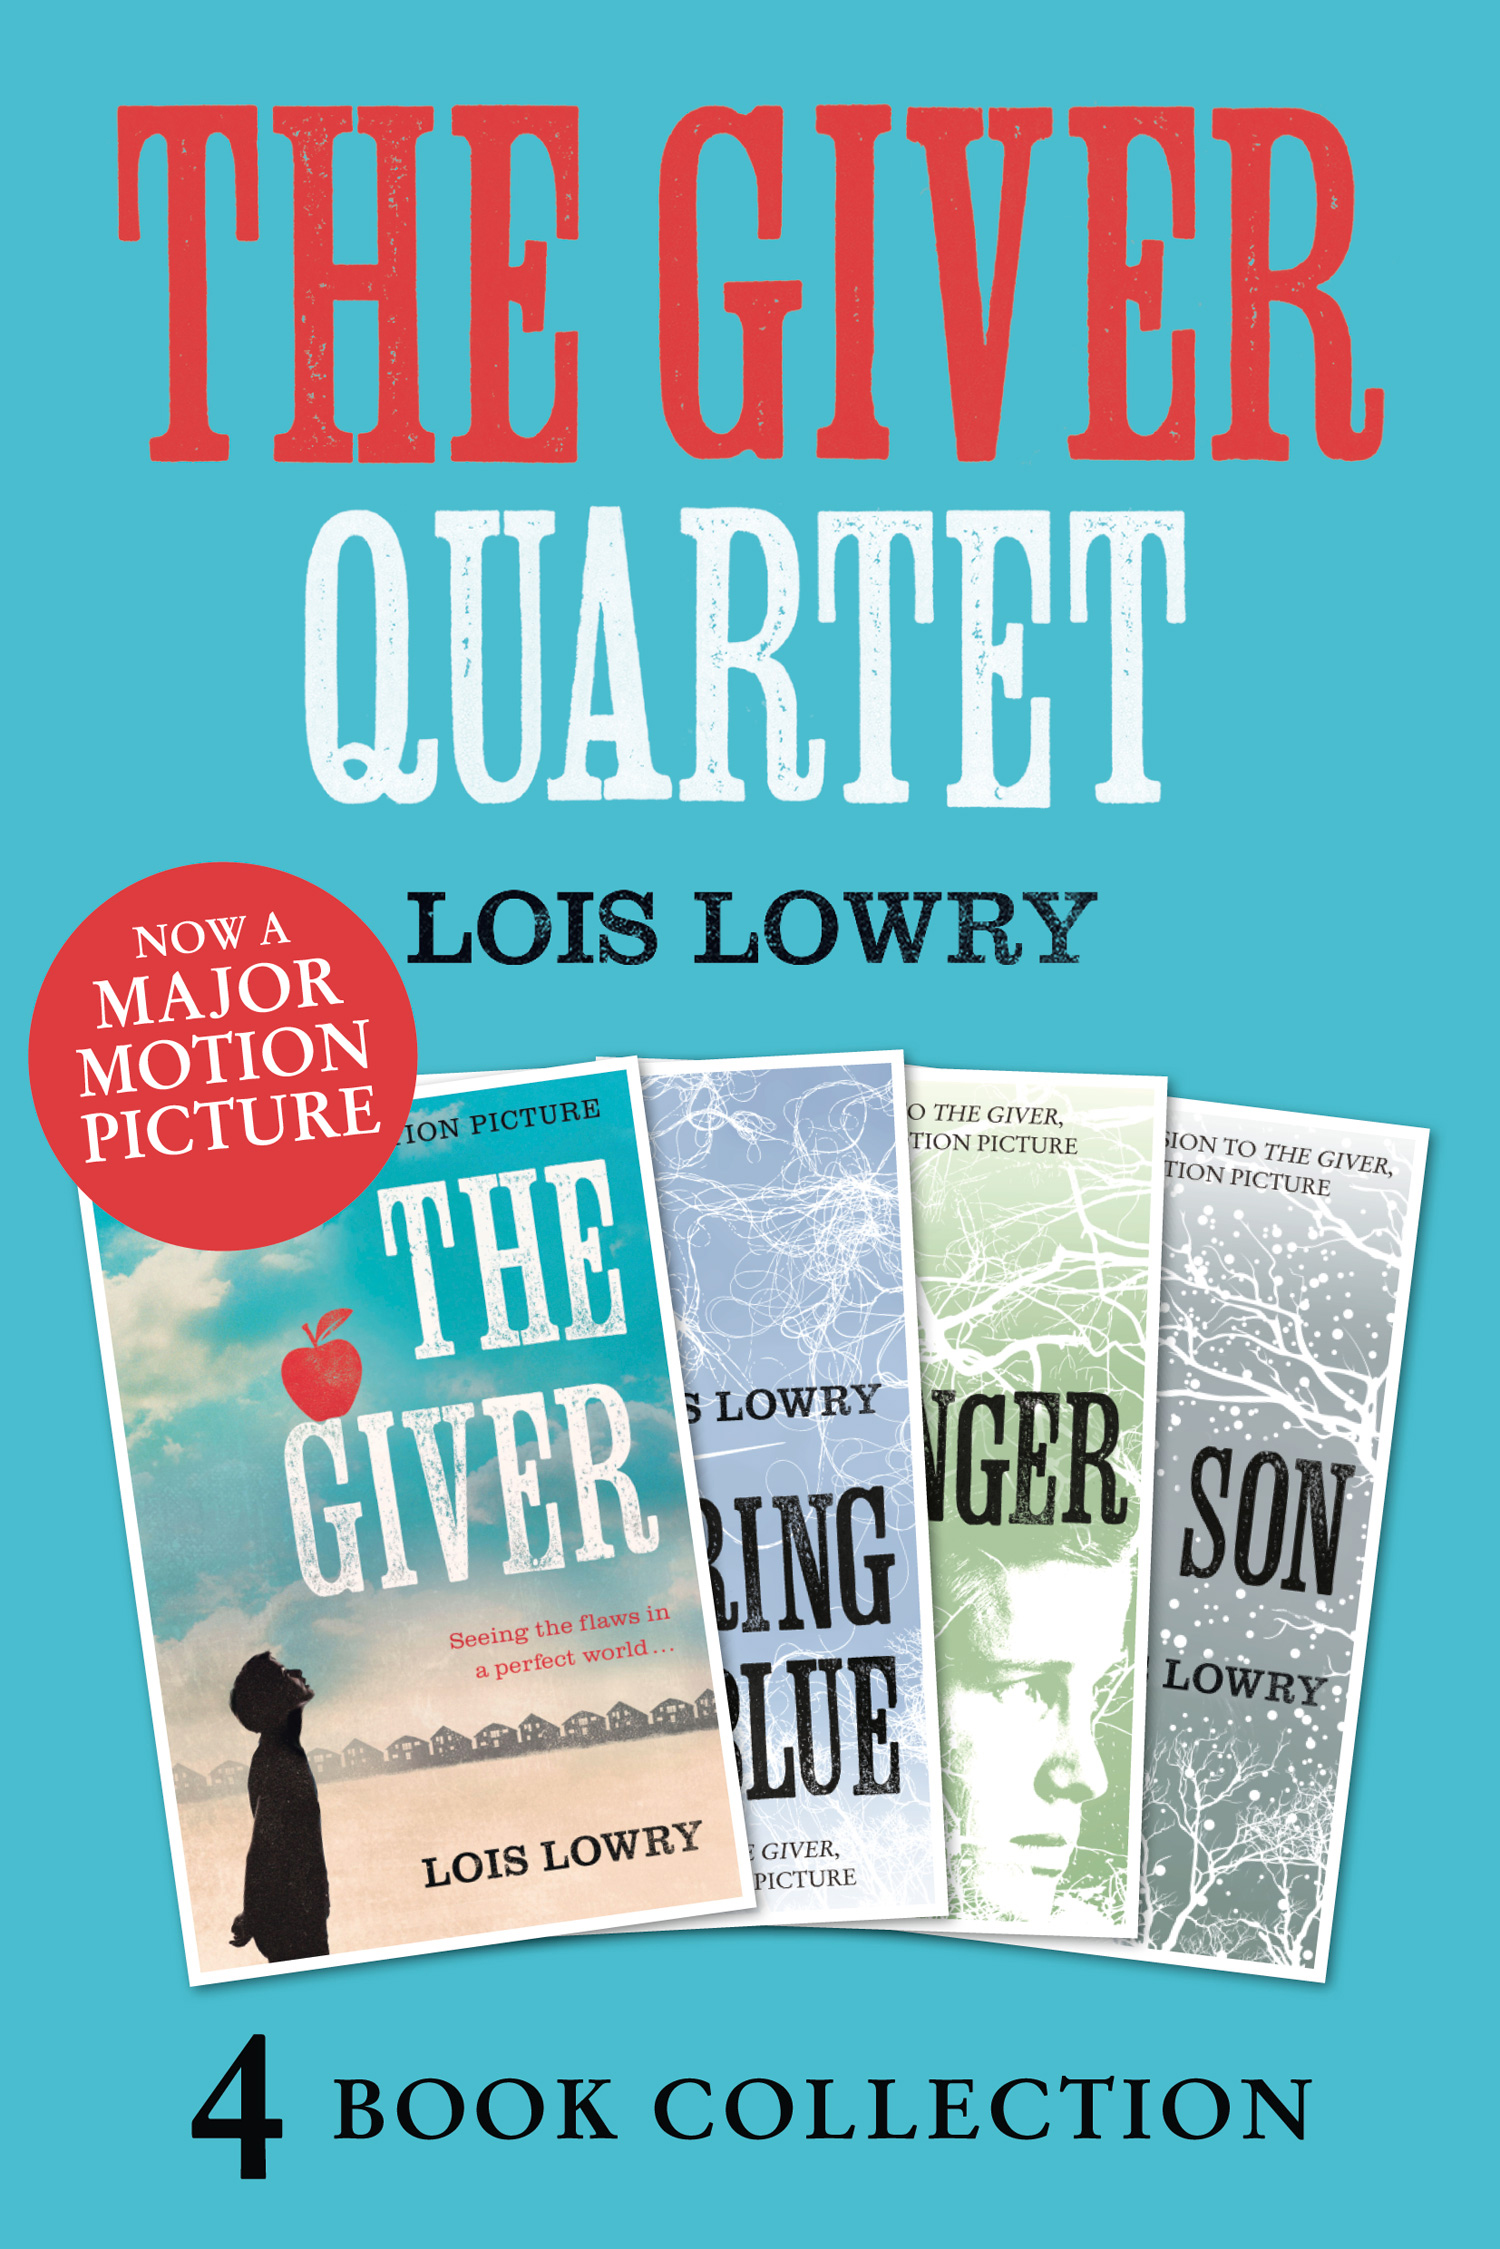 The Giver, Gathering Blue, Messenger, Son